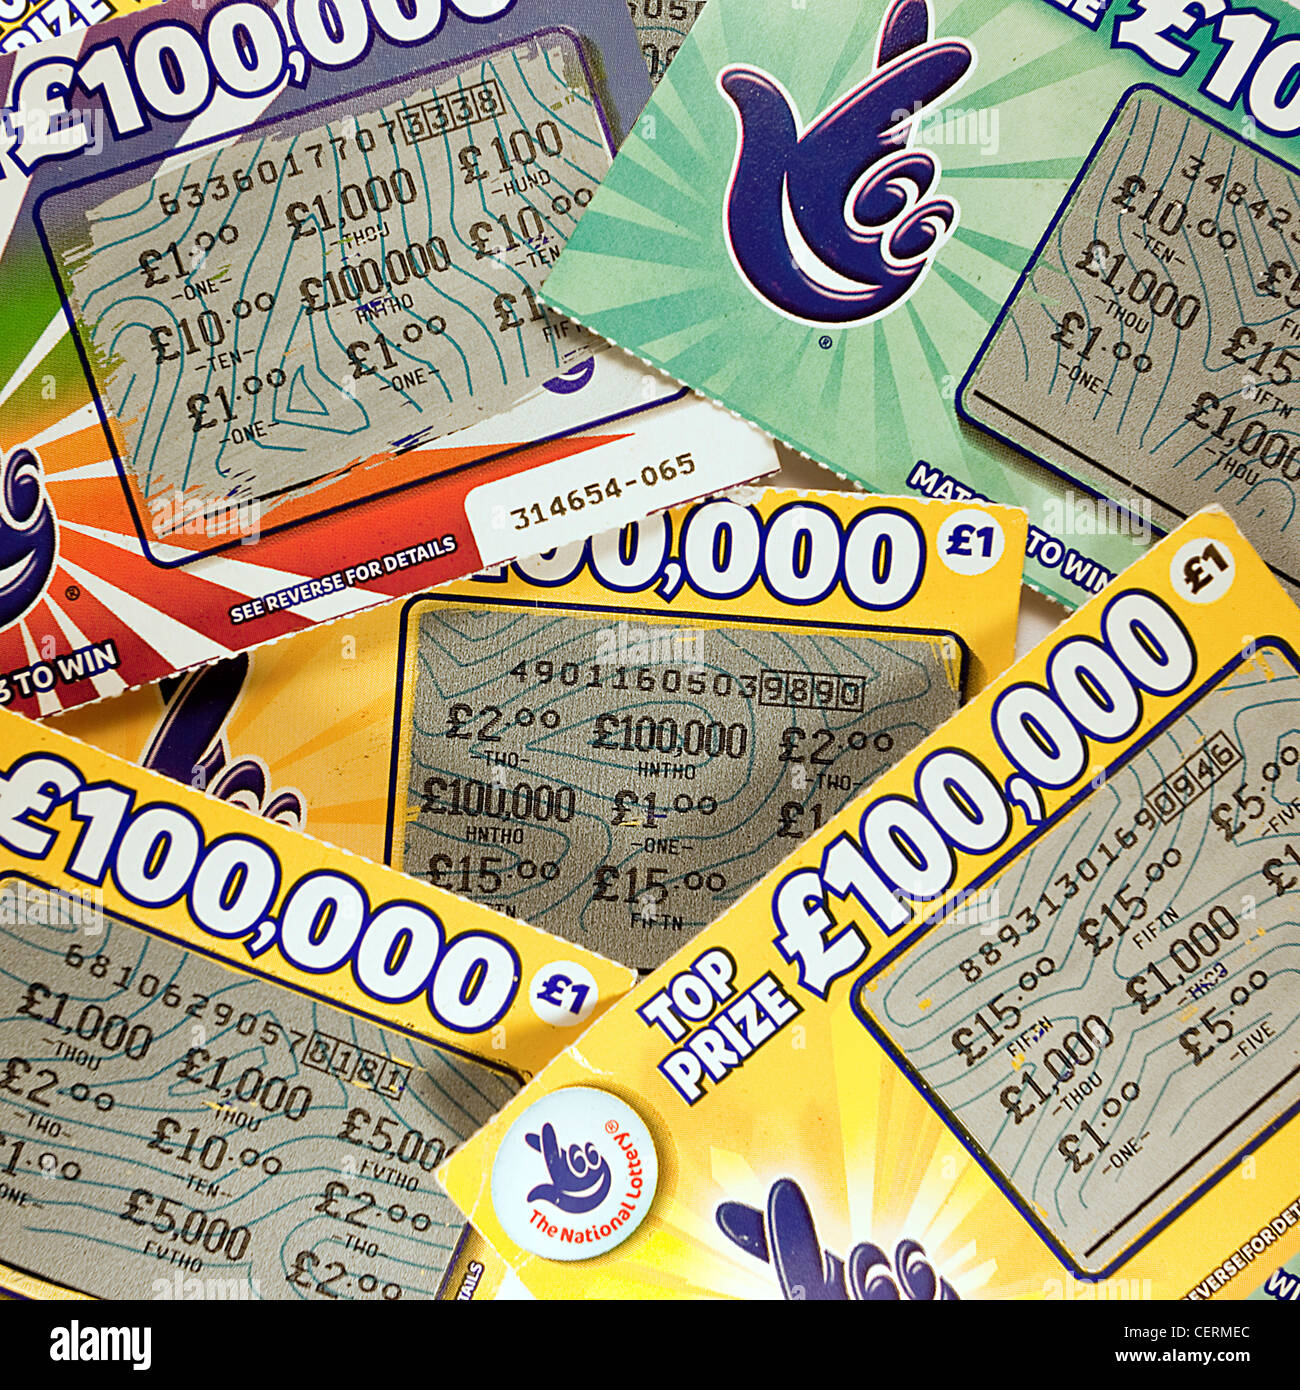 Scratch Card Cards Lottery Lotto Winning Cards - Stock Image